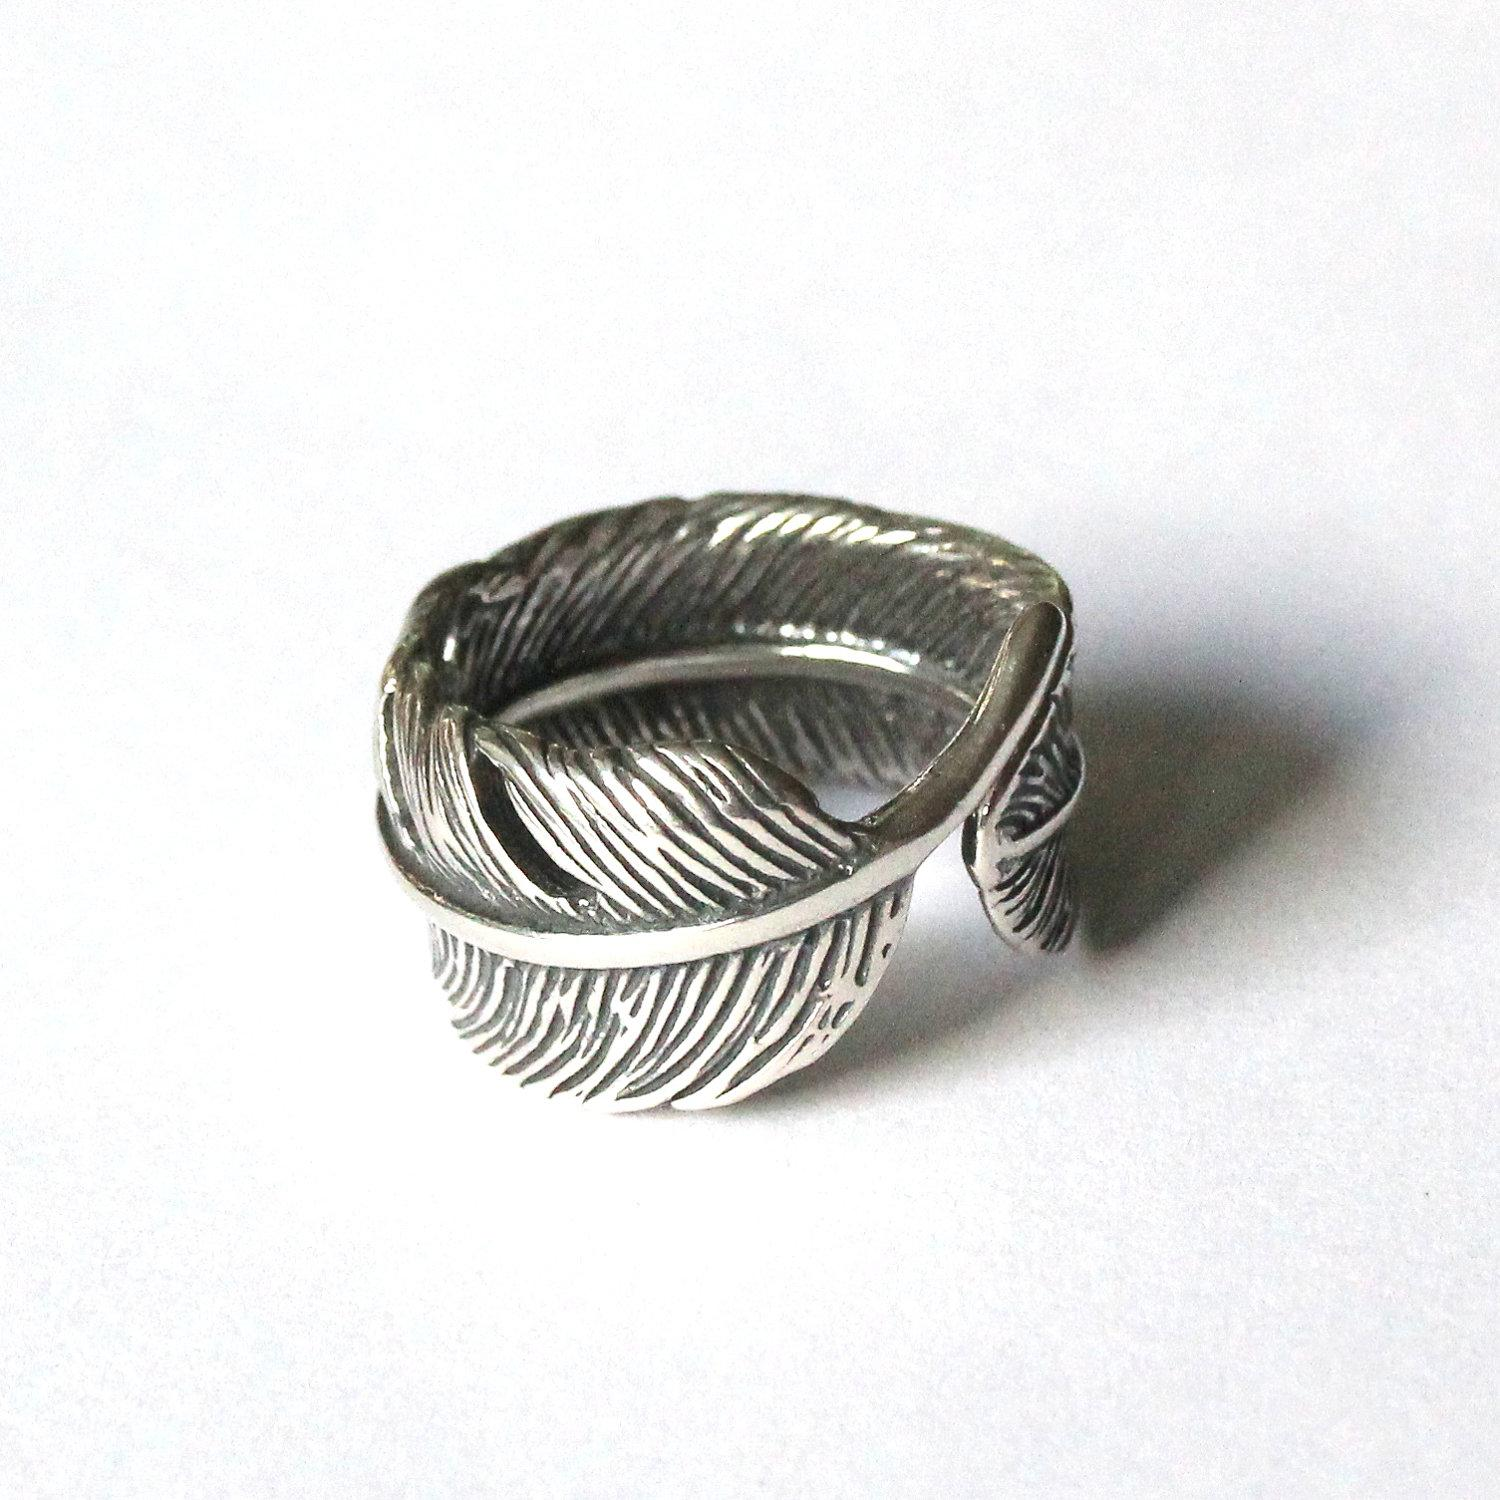 Raven Feather Bypass Ring cast in Solid Sterling Silver by mrd74